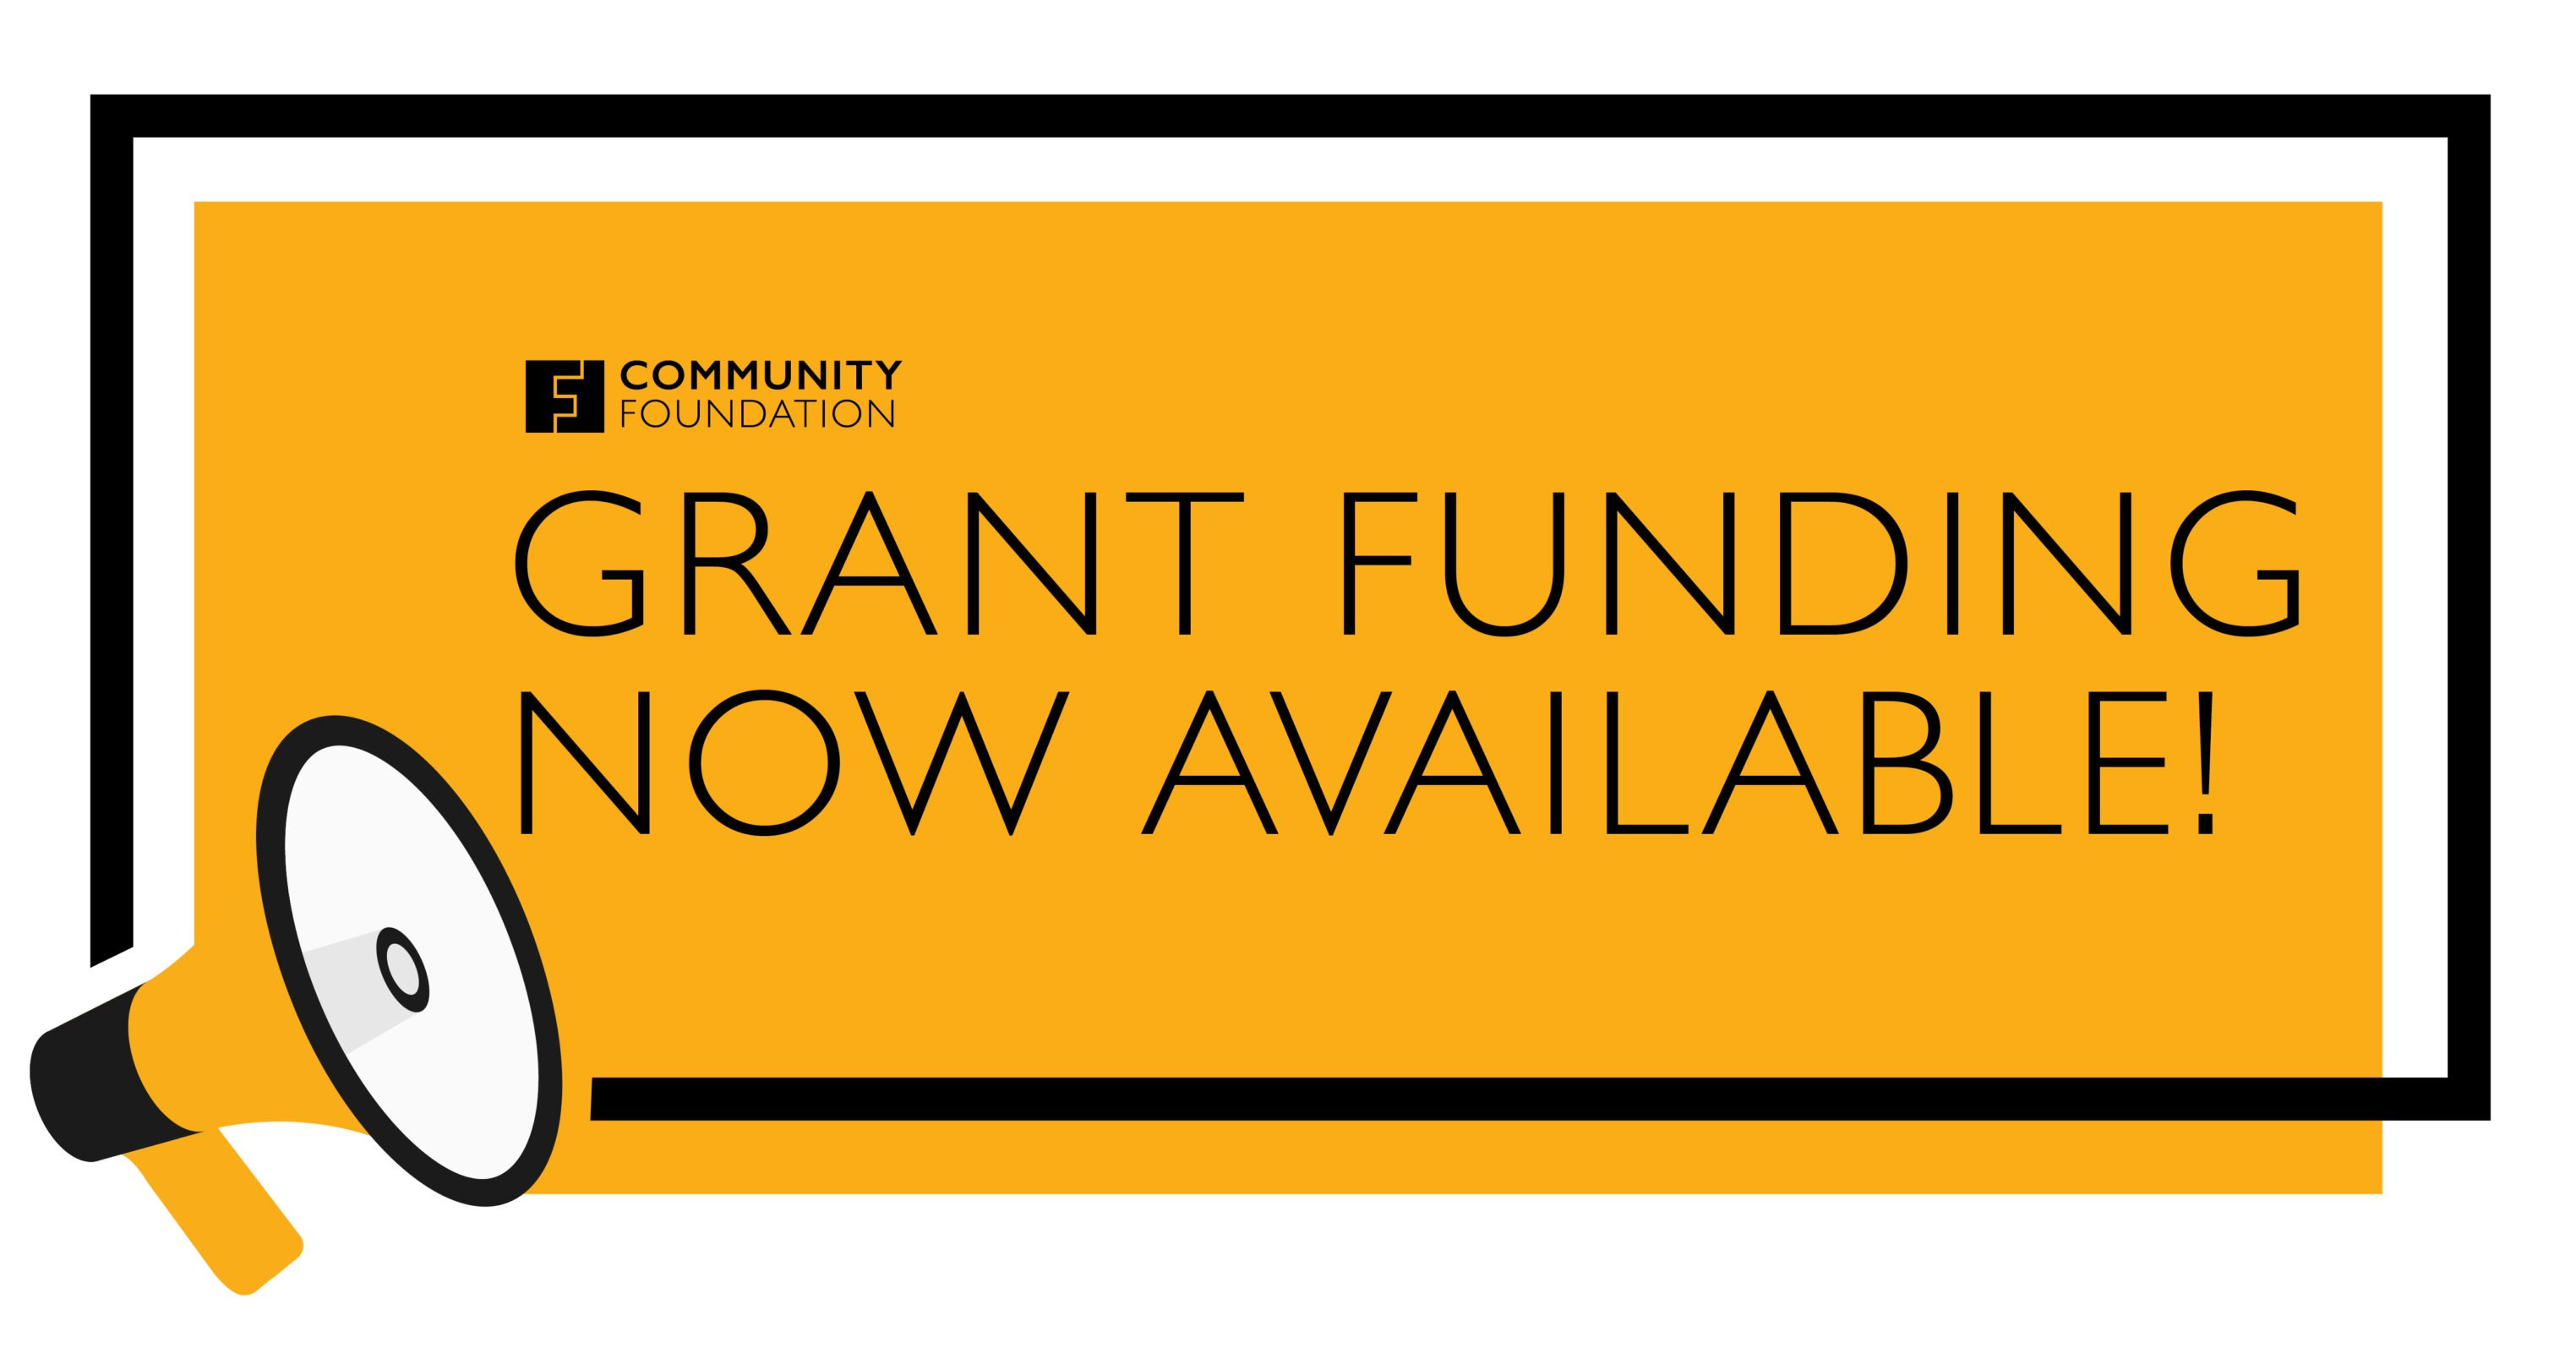 COVID-19 Response Fund Awards $1M, New Funding Opportunity Open to Nonprofits